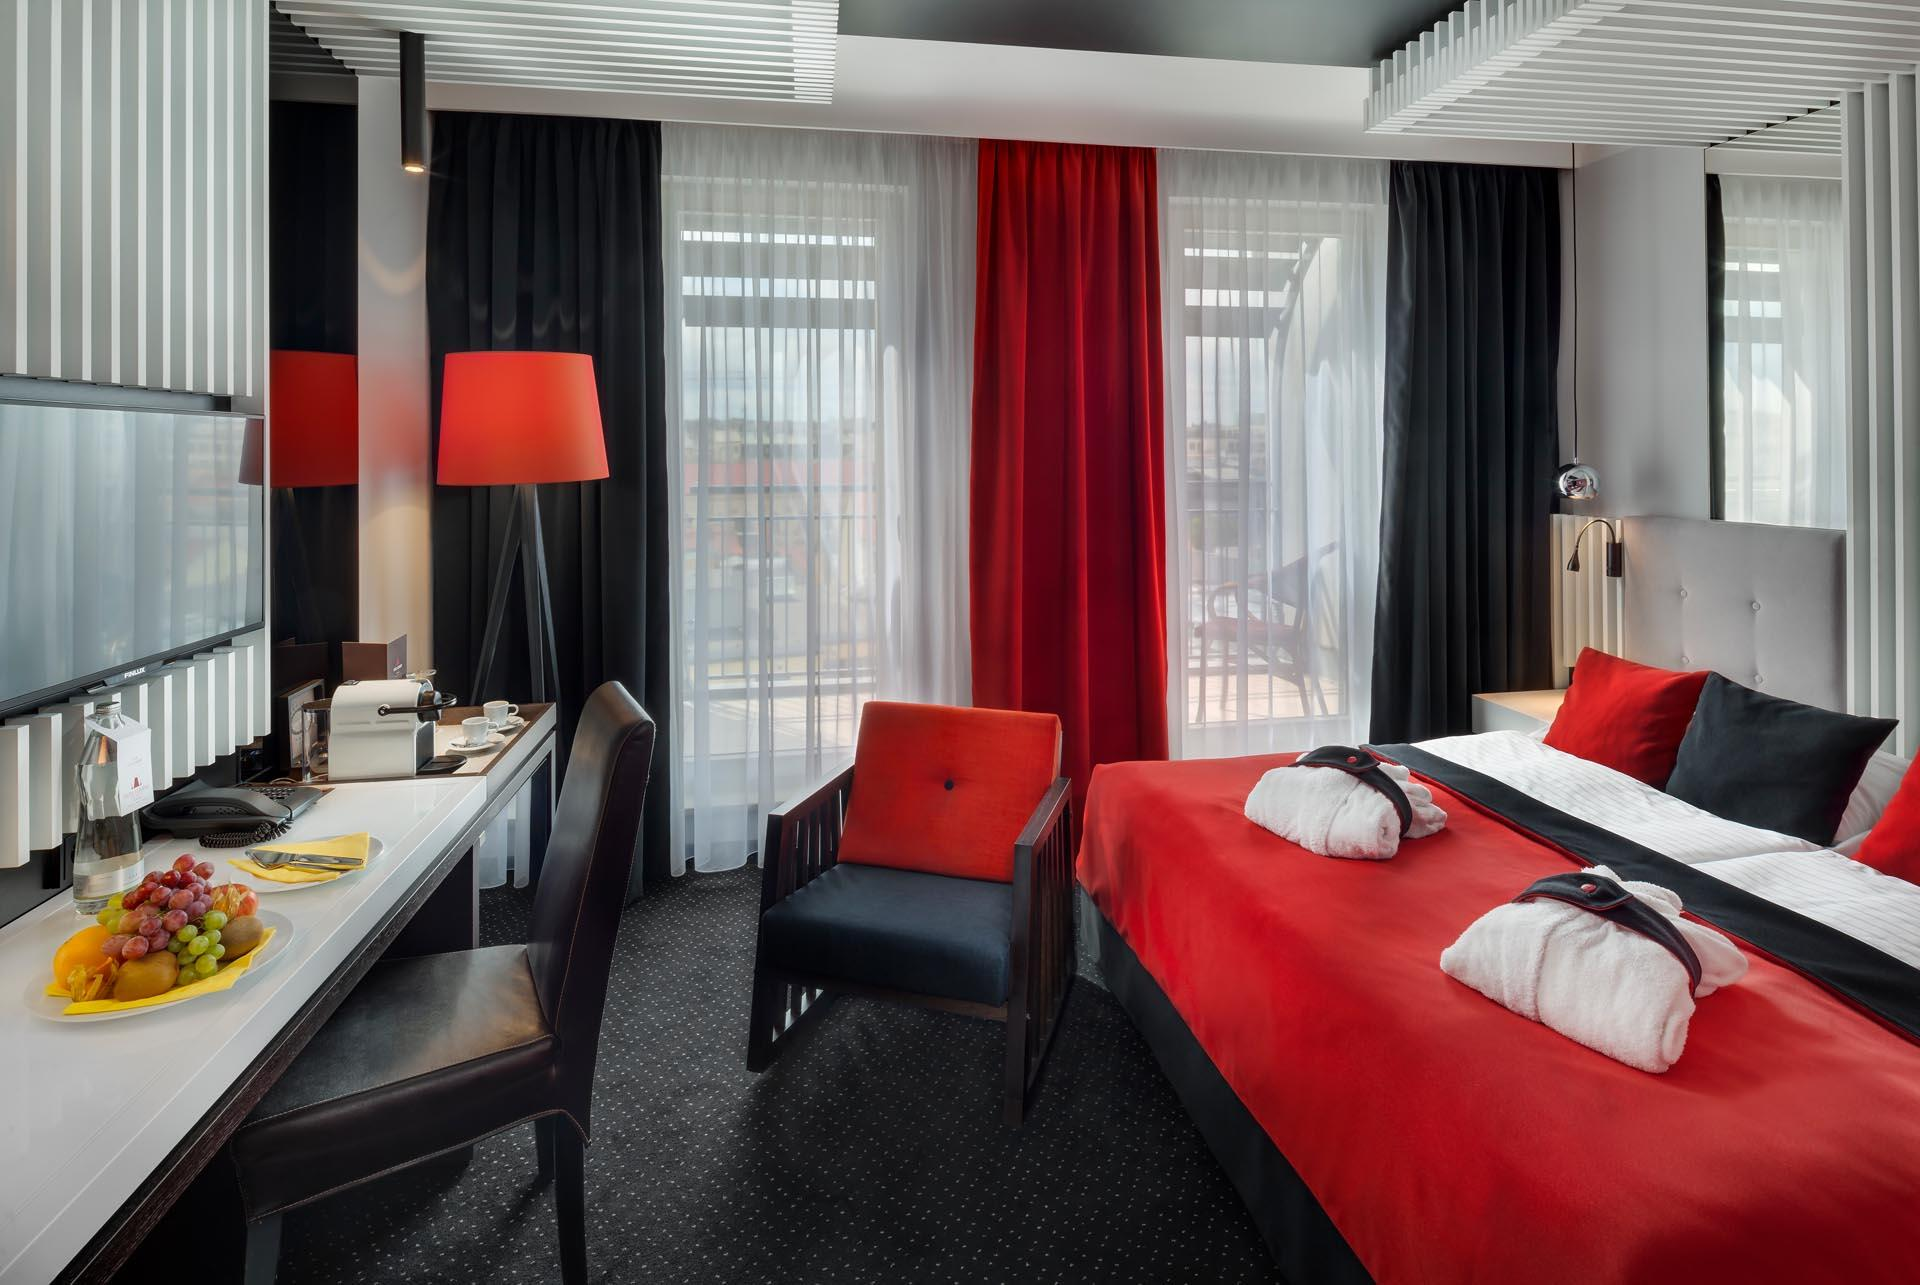 Superior Room with Balcony at Hotel Clement Prague